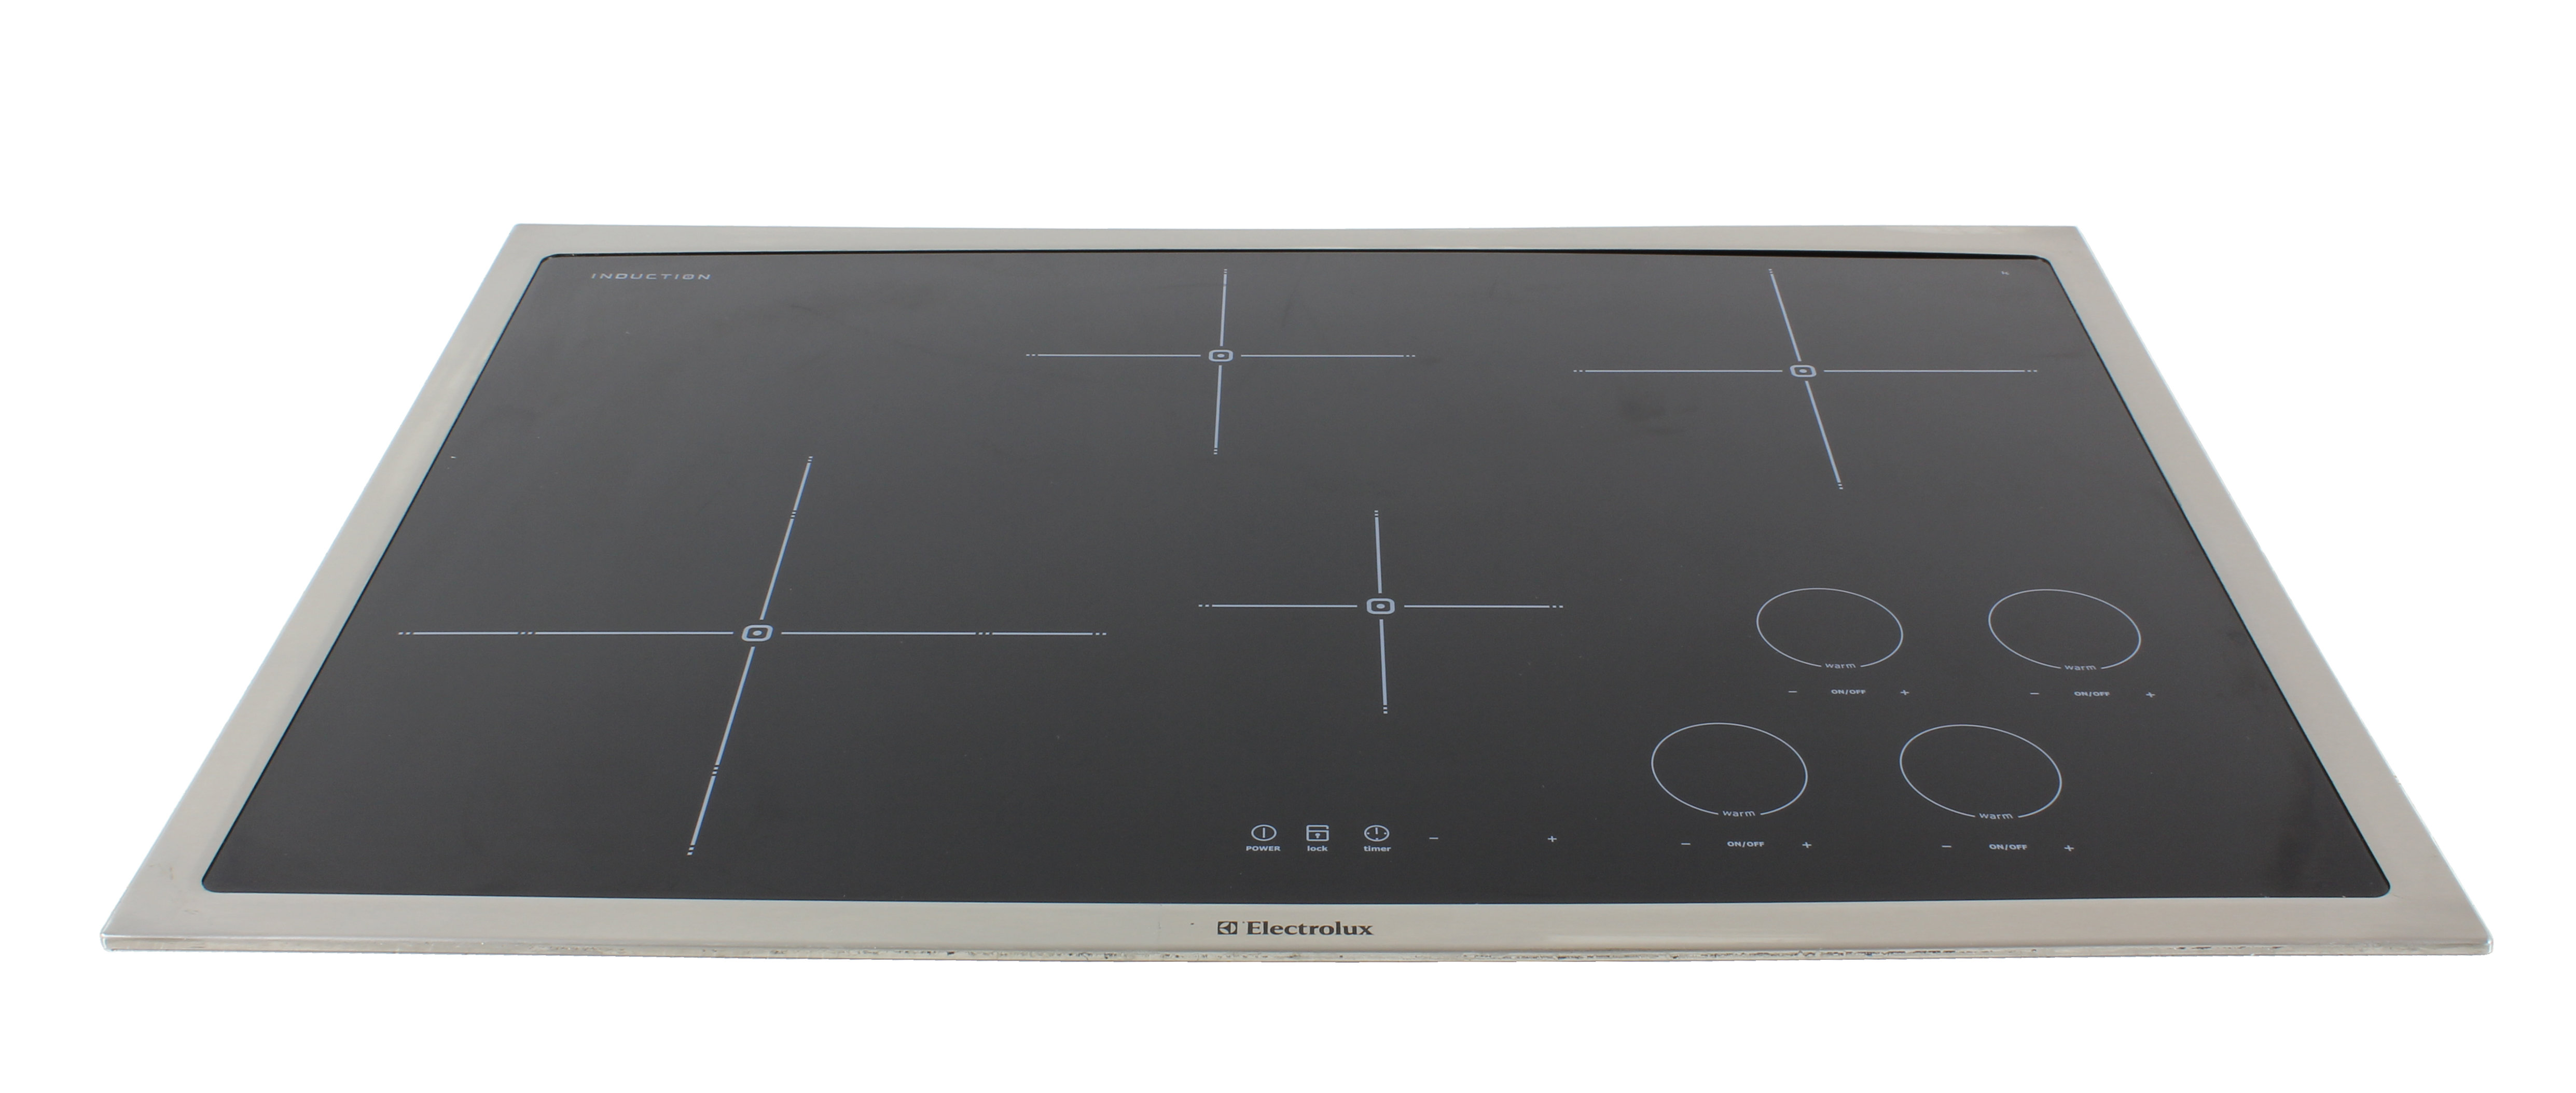 the electrolux ew30ic60ls cooktop features four induction burners